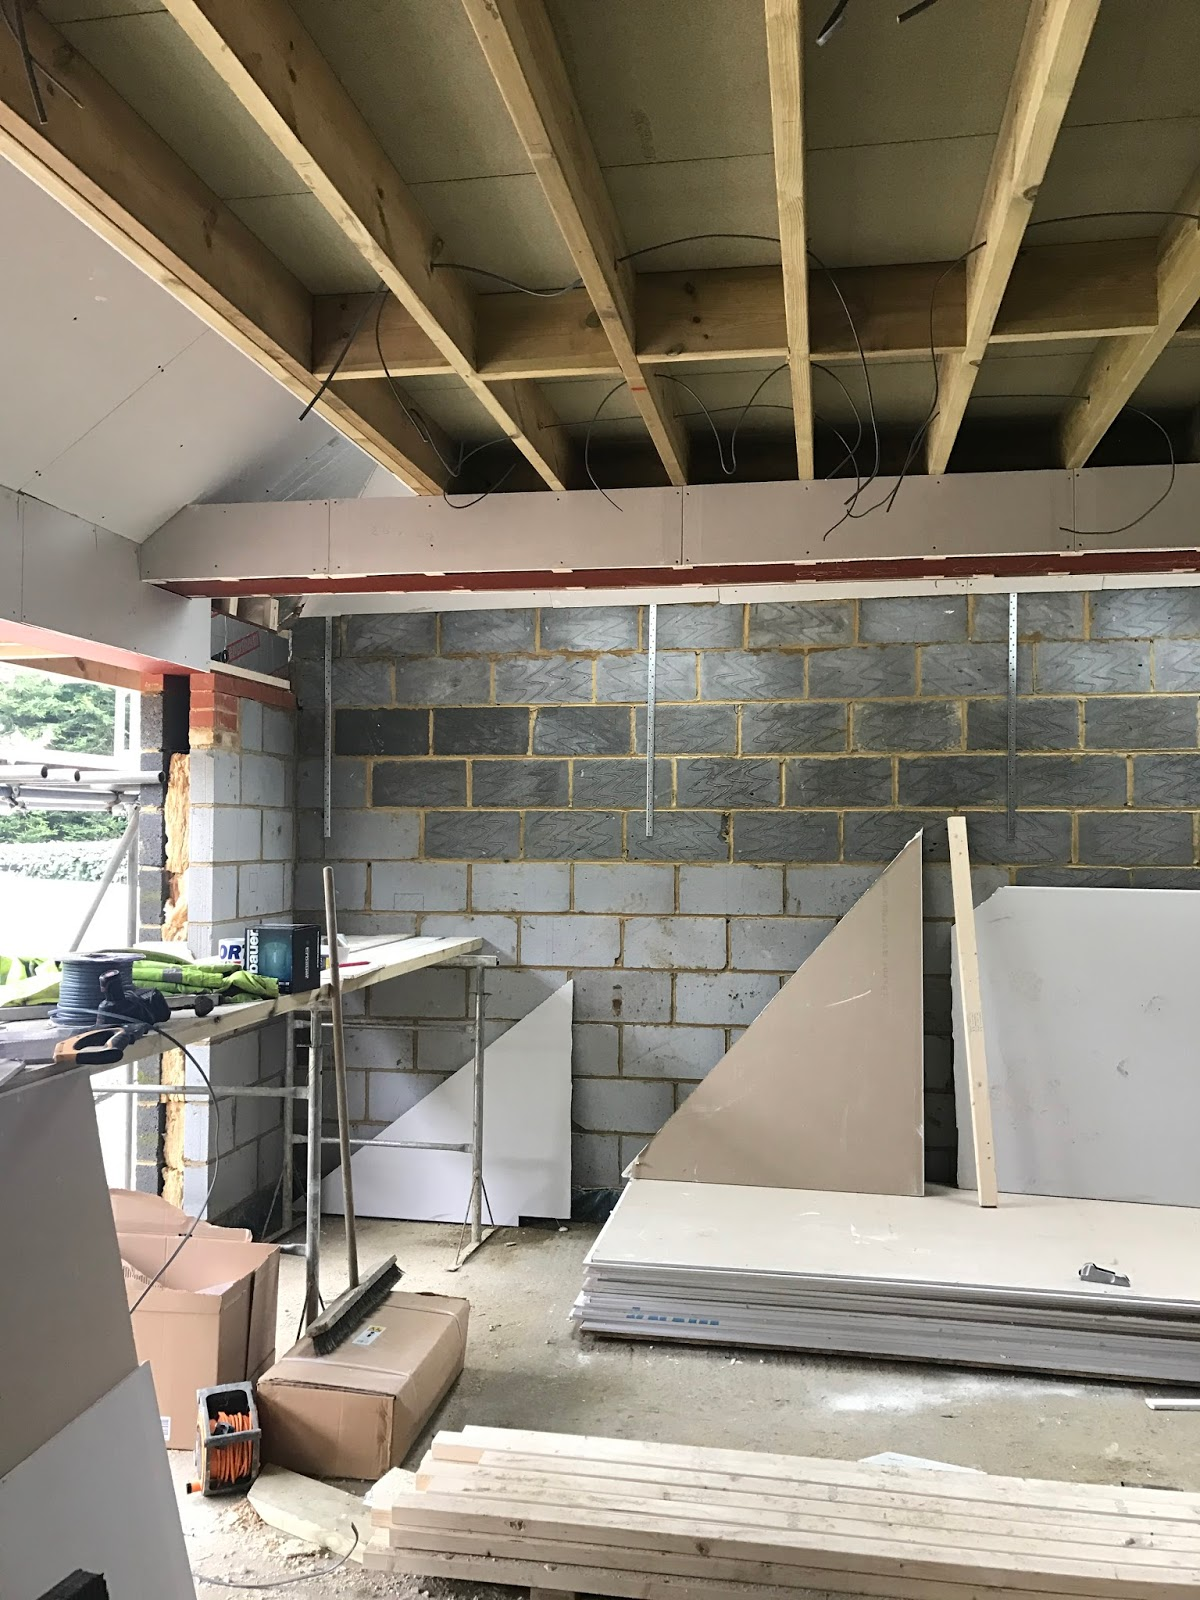 House Utility Room Extension Insulation Project